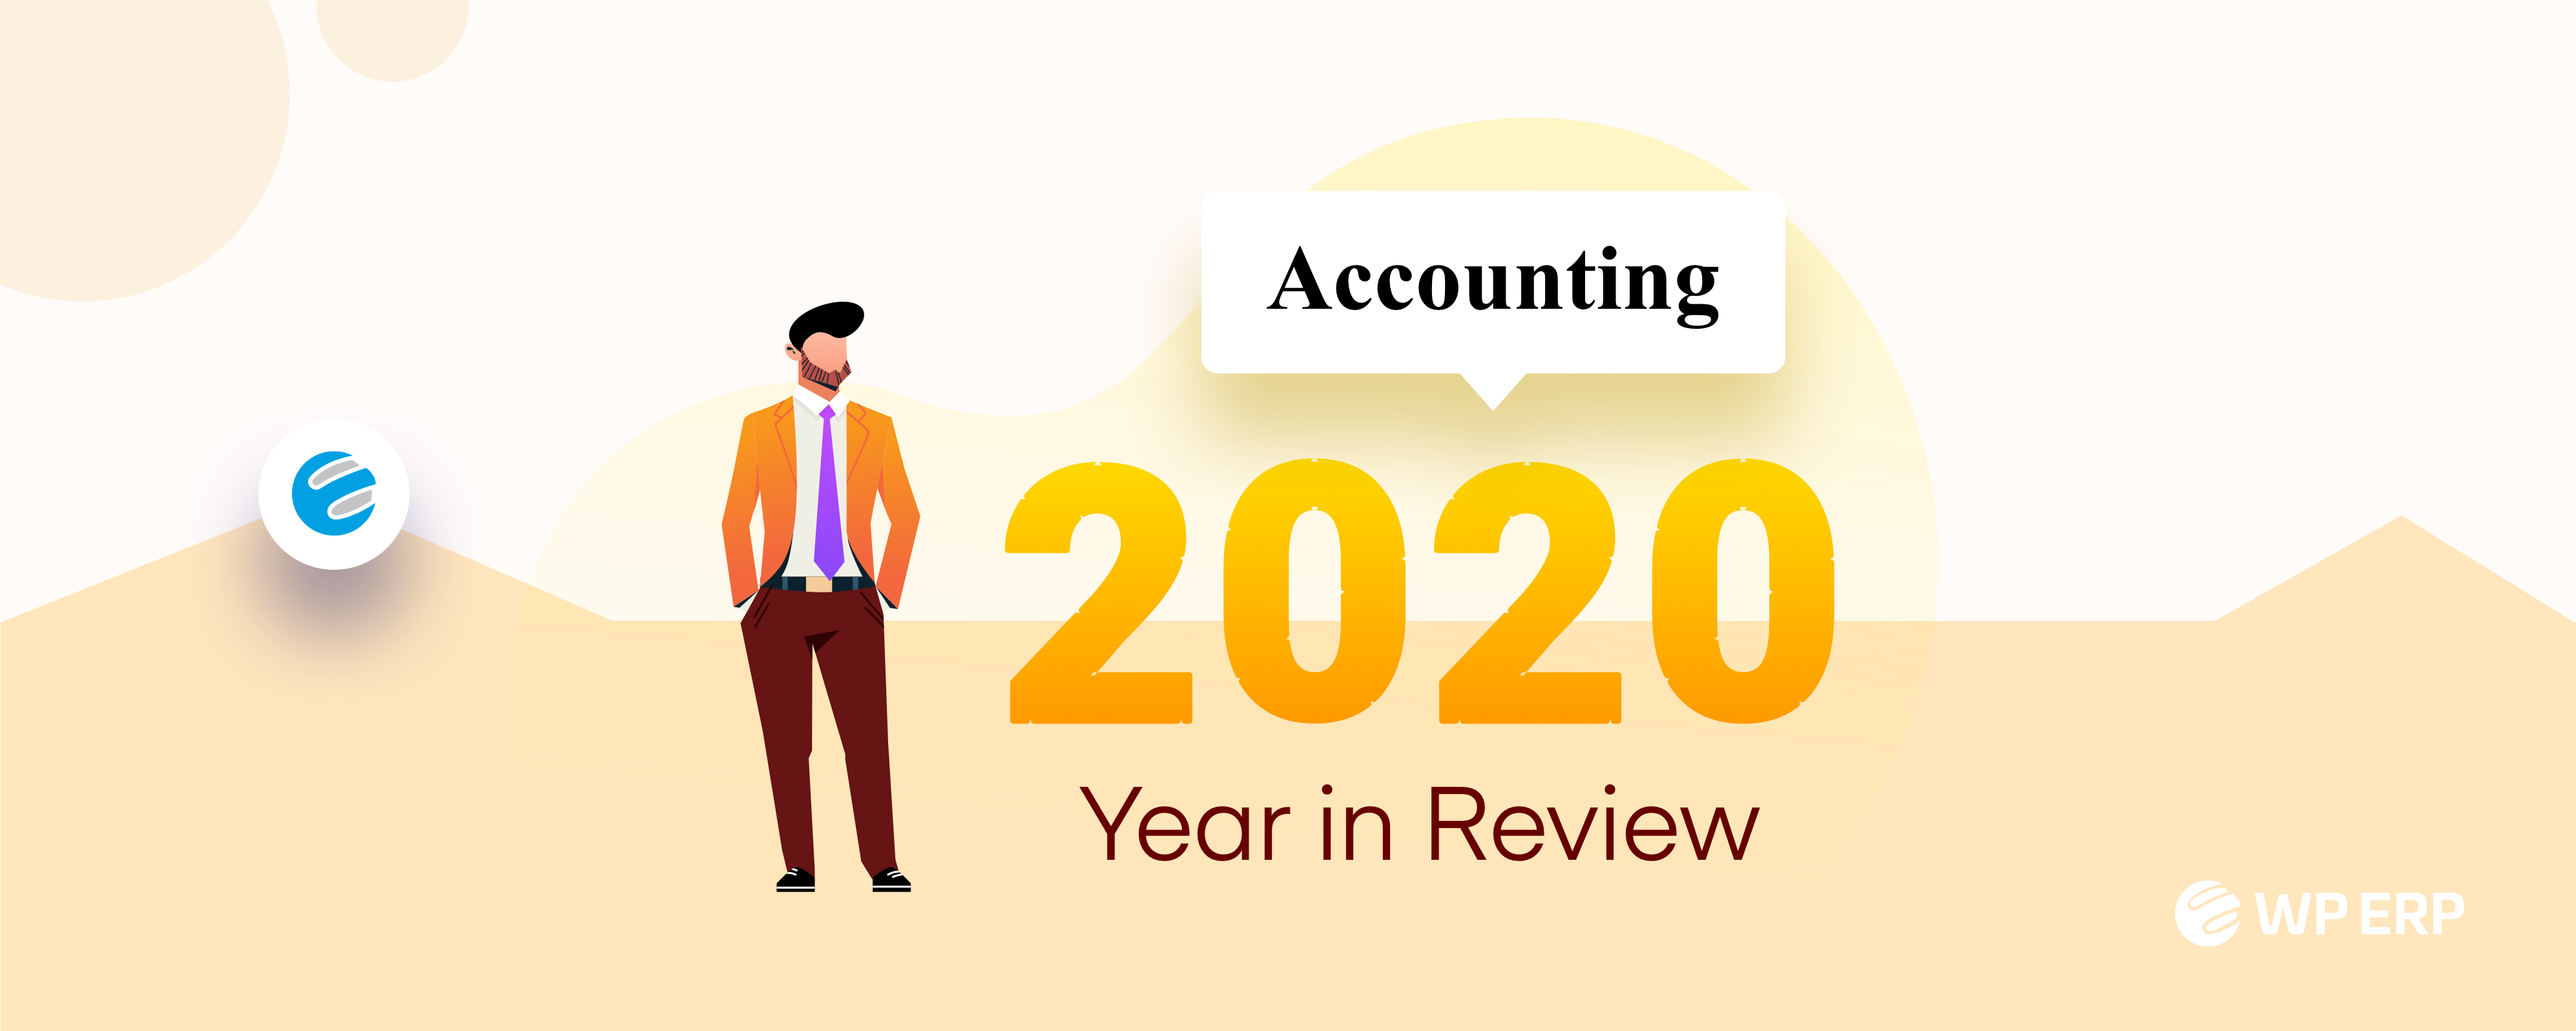 wp erp accounting year in review